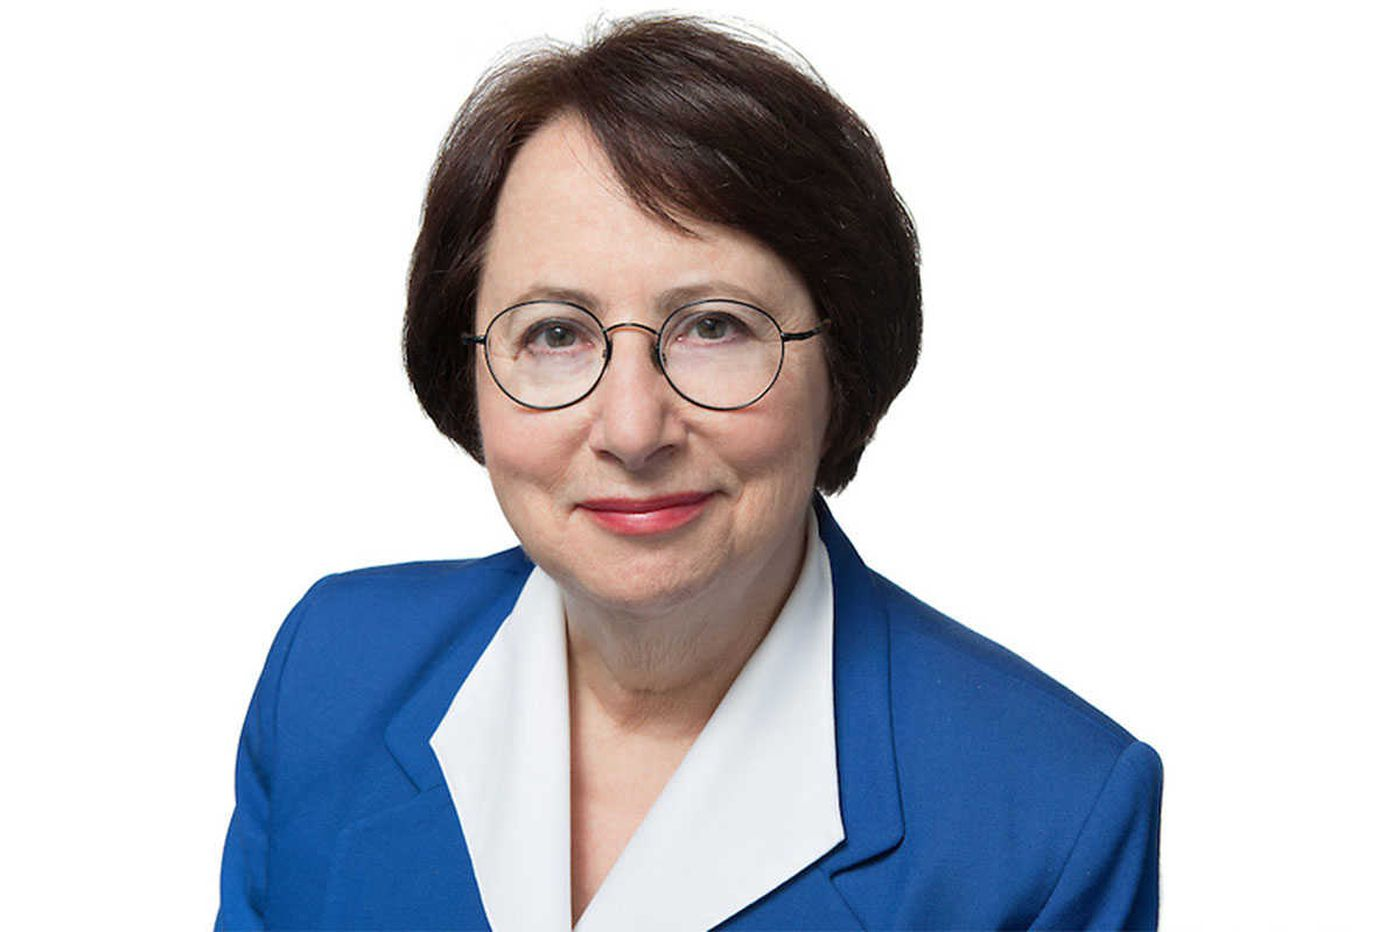 Inquirer's Trudy Rubin awarded prestigious honor for foreign affairs columns